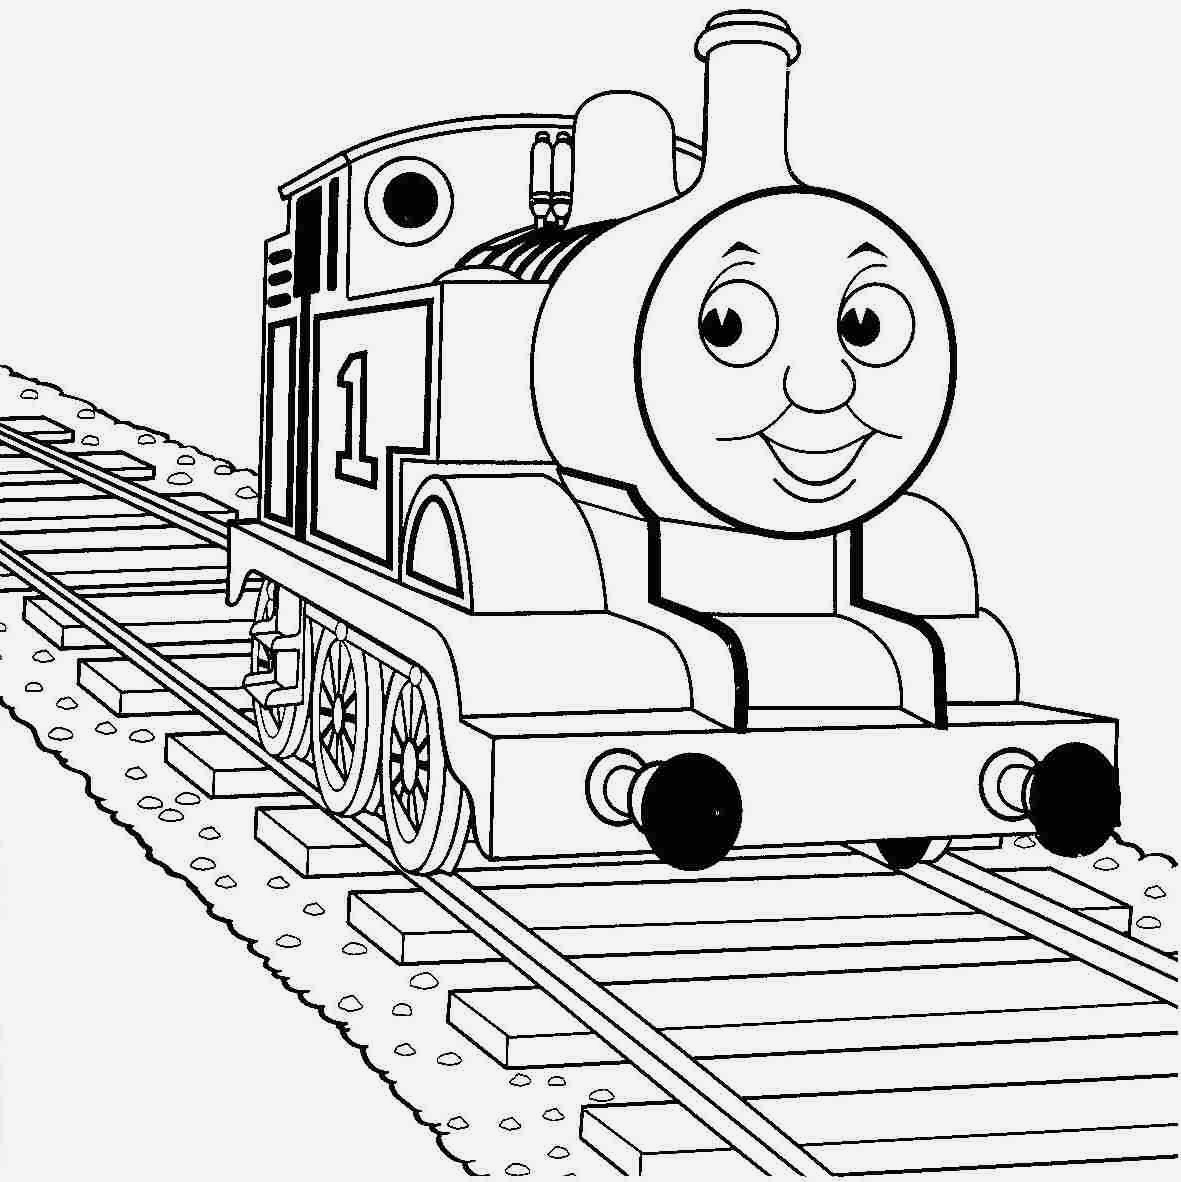 Coloring Pages Thomas the Train  to Print 14t - Free For Children